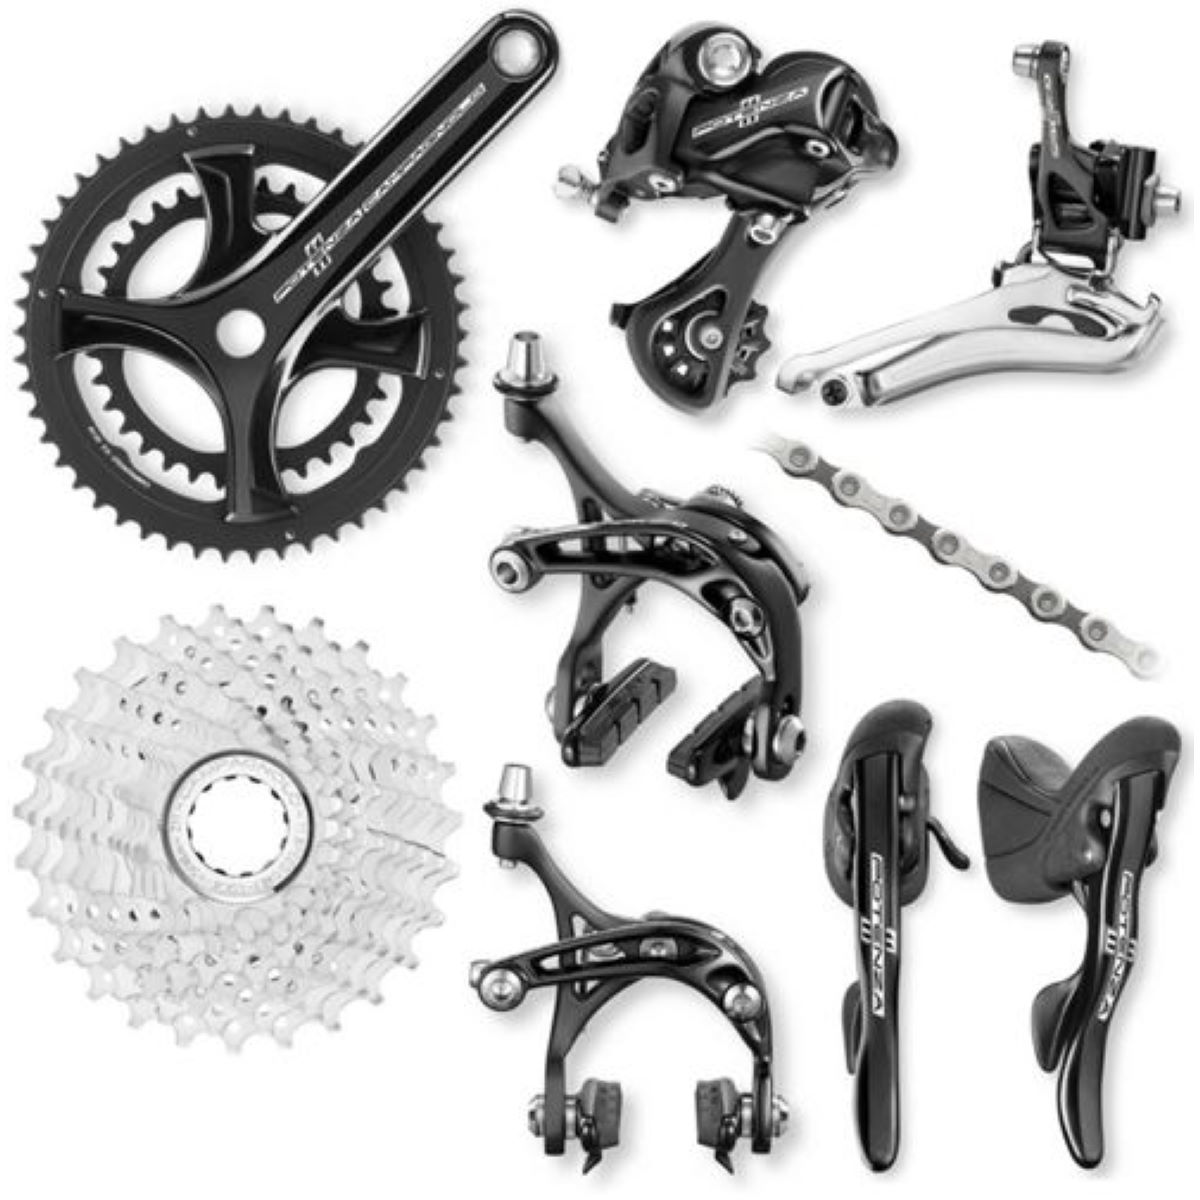 Campagnolo Potenza 11 Speed Groupset - 52/36 x 12-27T 175mm Noir Groupes